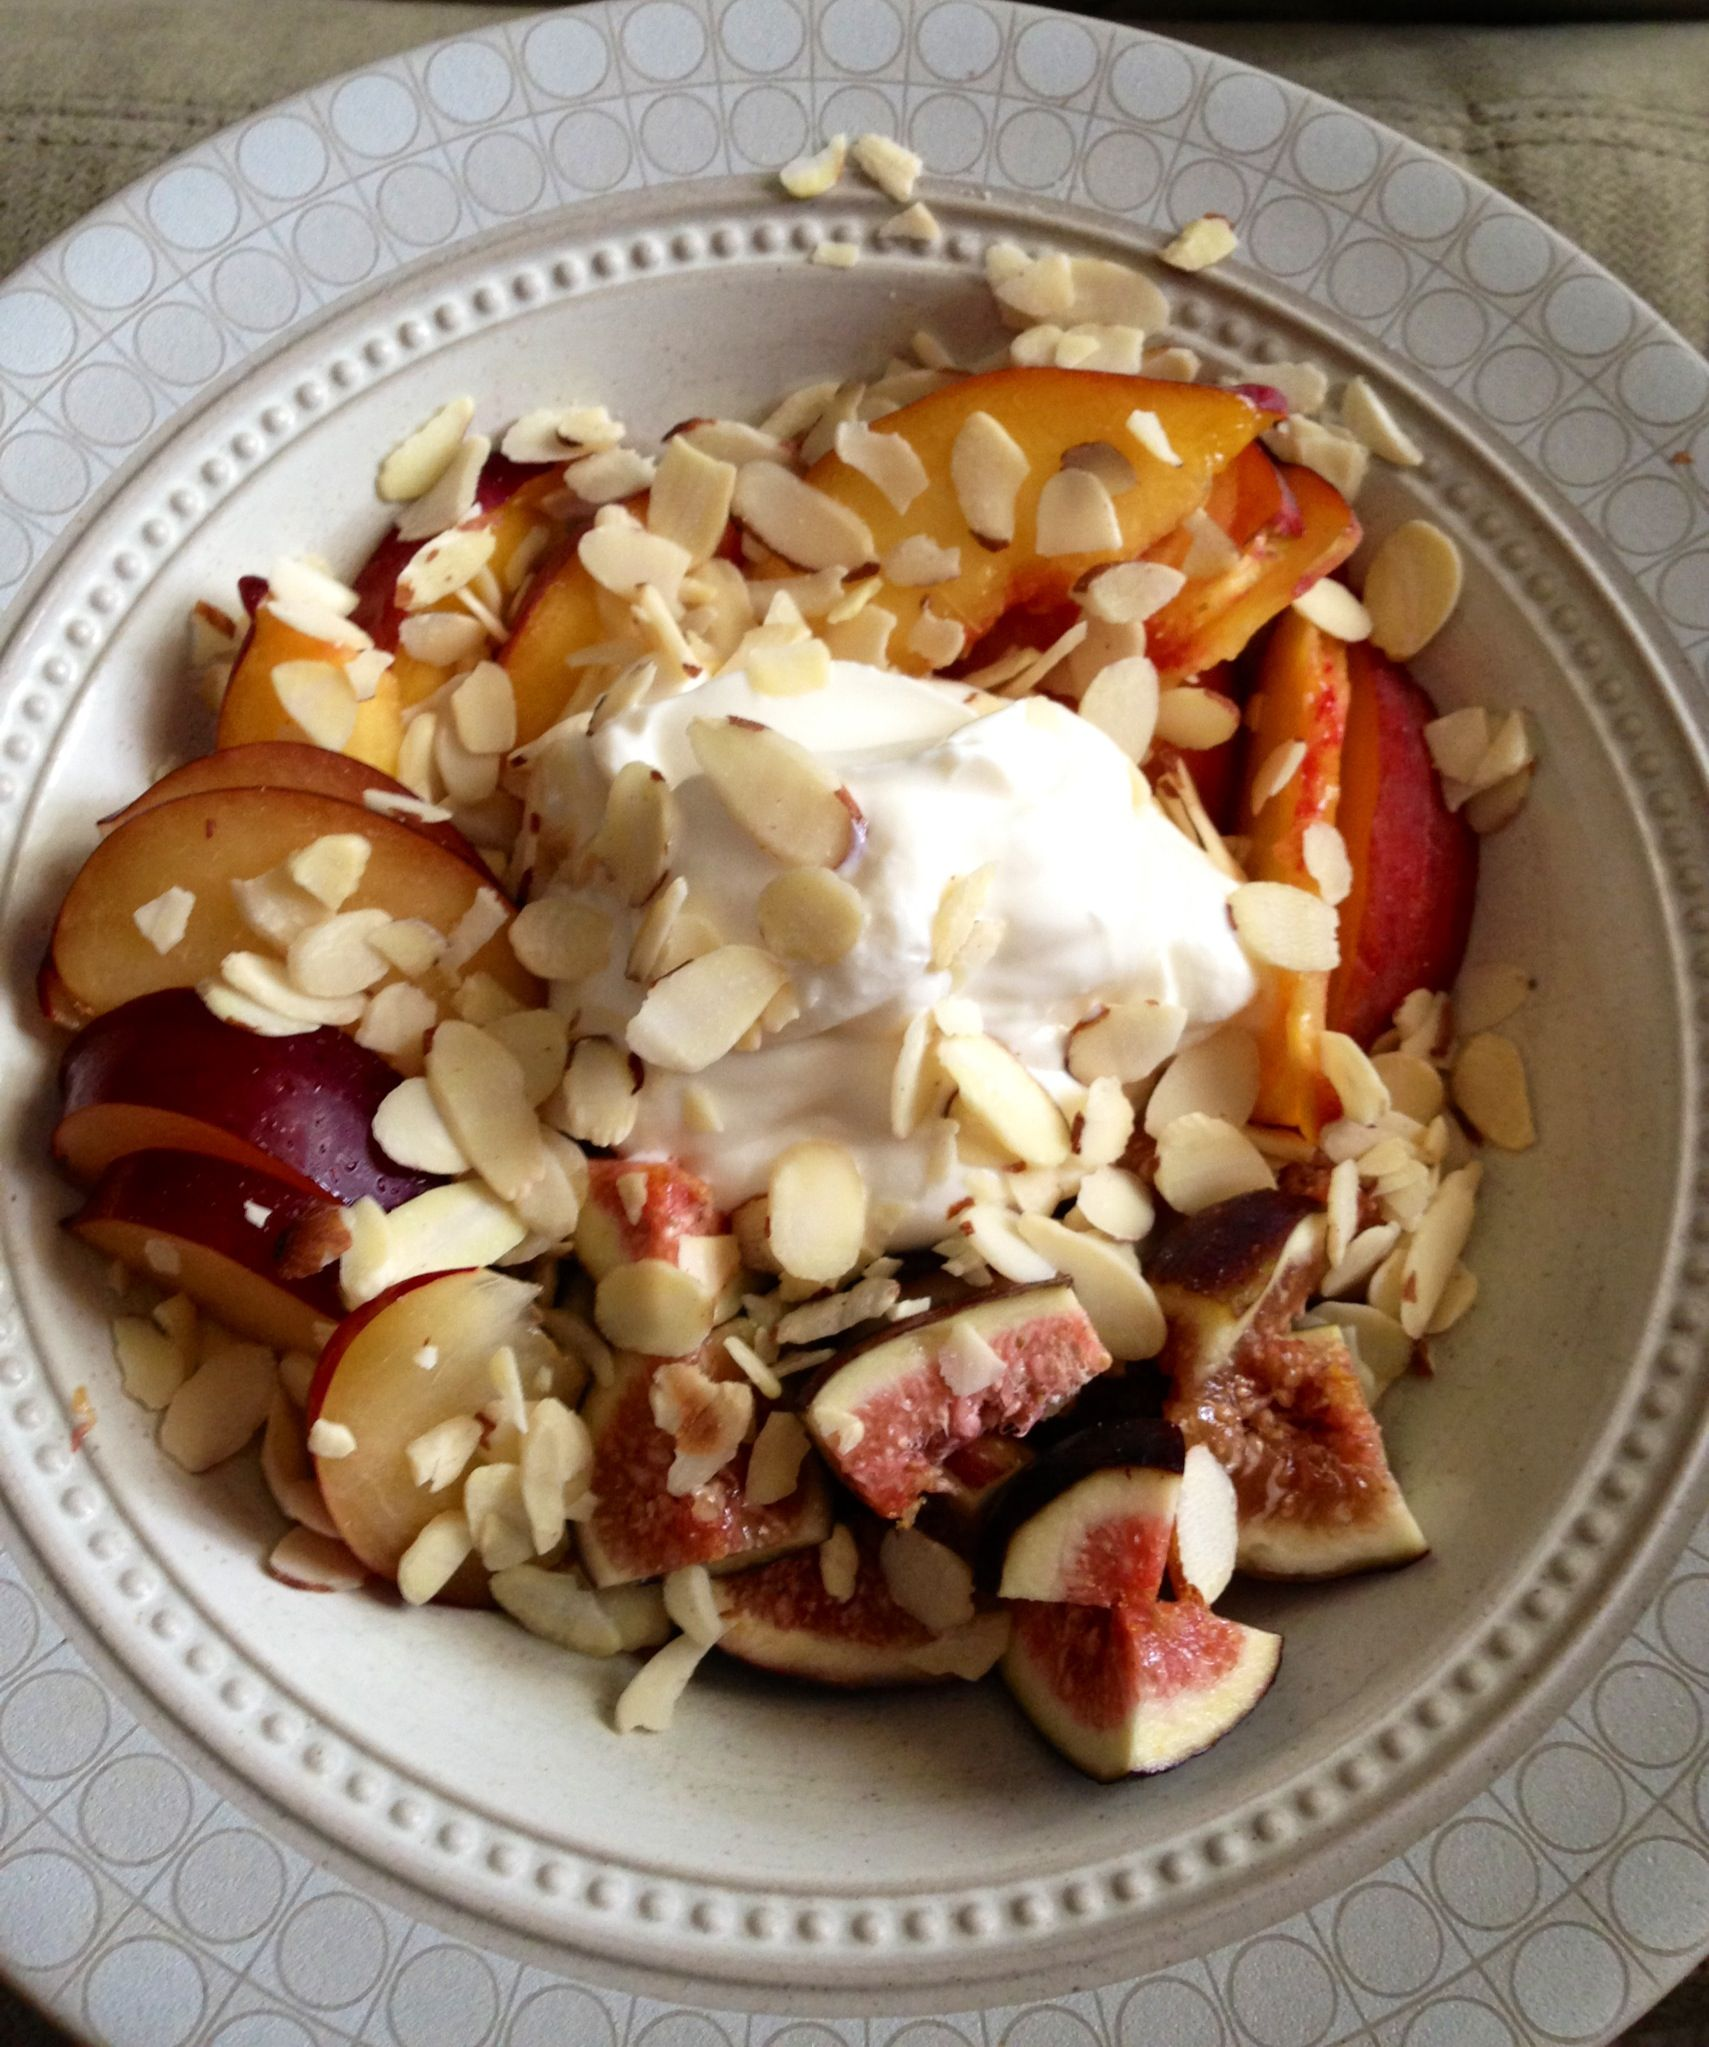 Figs, peaches, plums, Greek yogurt and slivered almonds- yummy!